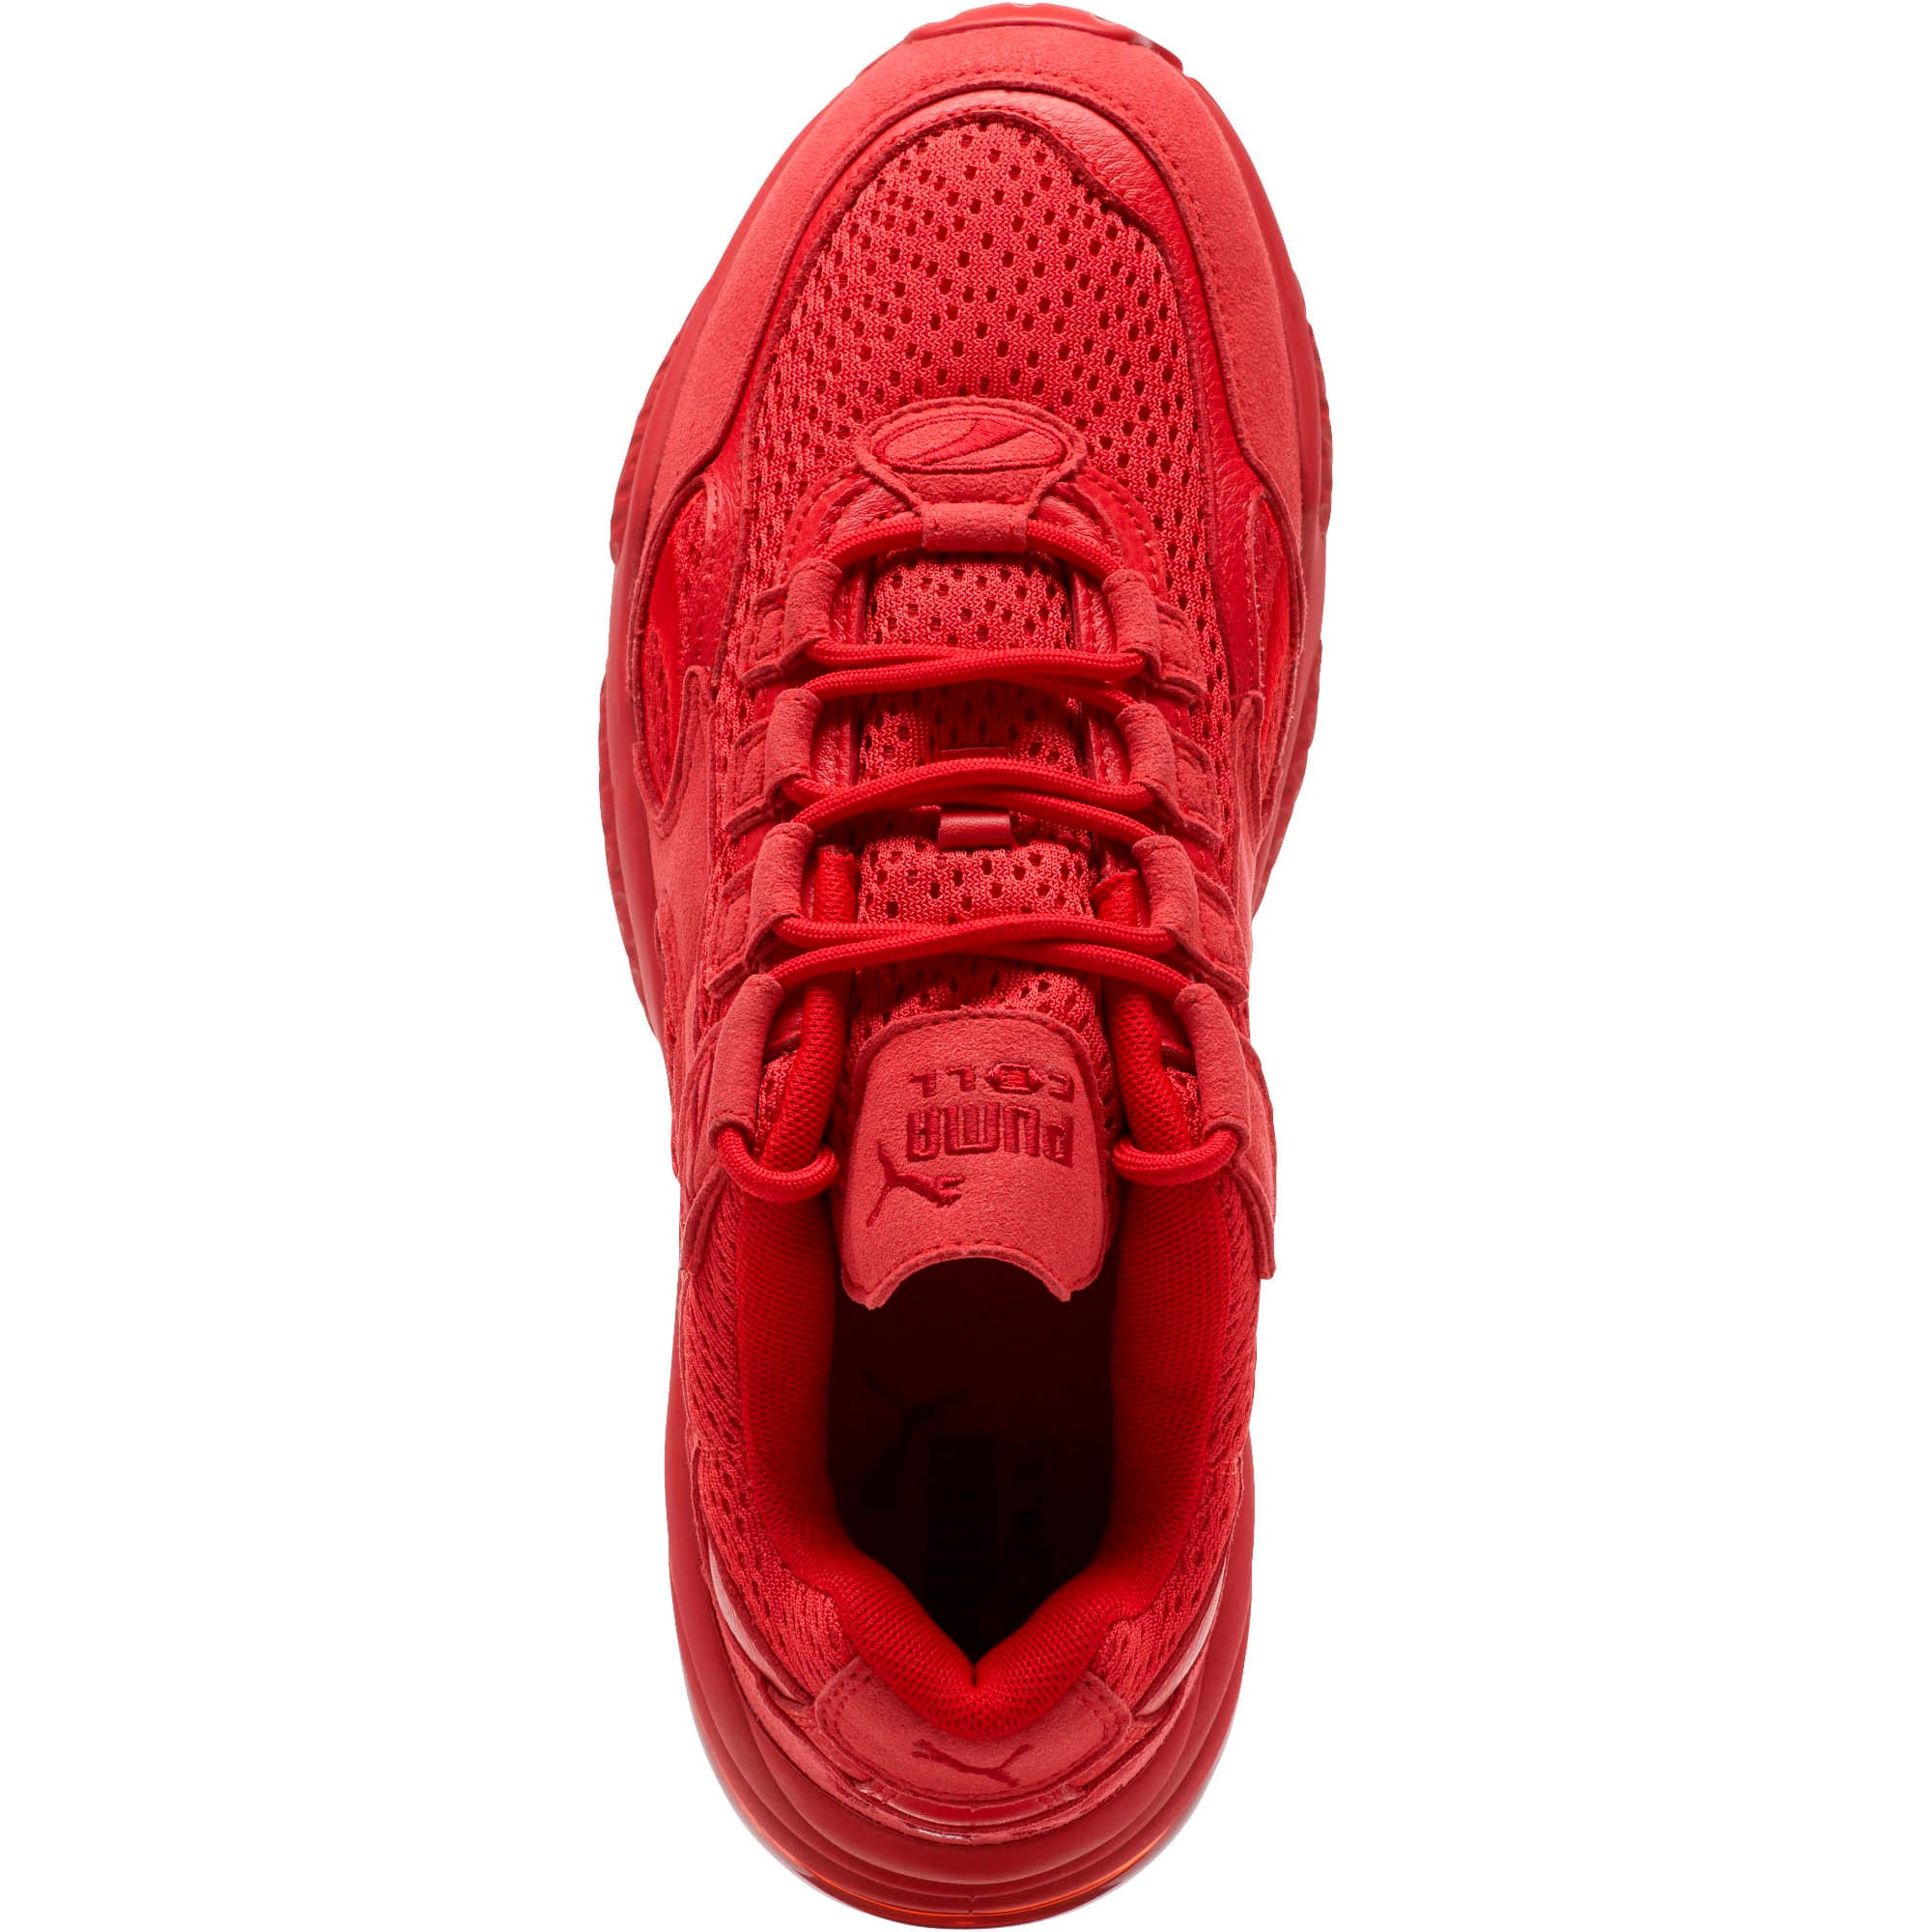 Thumbnail 5 of CELL Venom Red Sneakers, Ribbon Red-Tibetan Red, medium